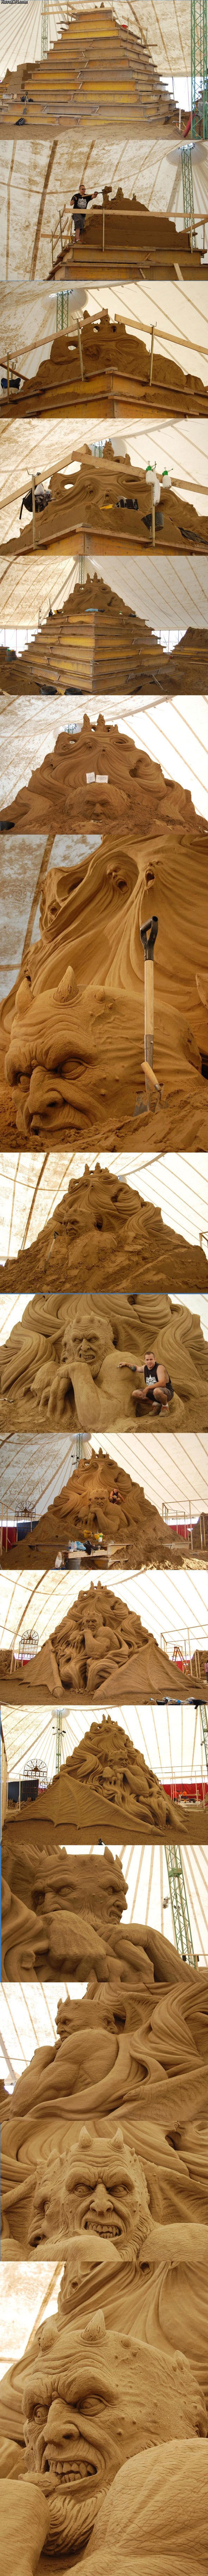 Big ass sand scupture and . like here be one of them big ass sand sculptures and . I dids it myself on holiday up in Redcat.. My senses are tingling. <mfw I read the description.